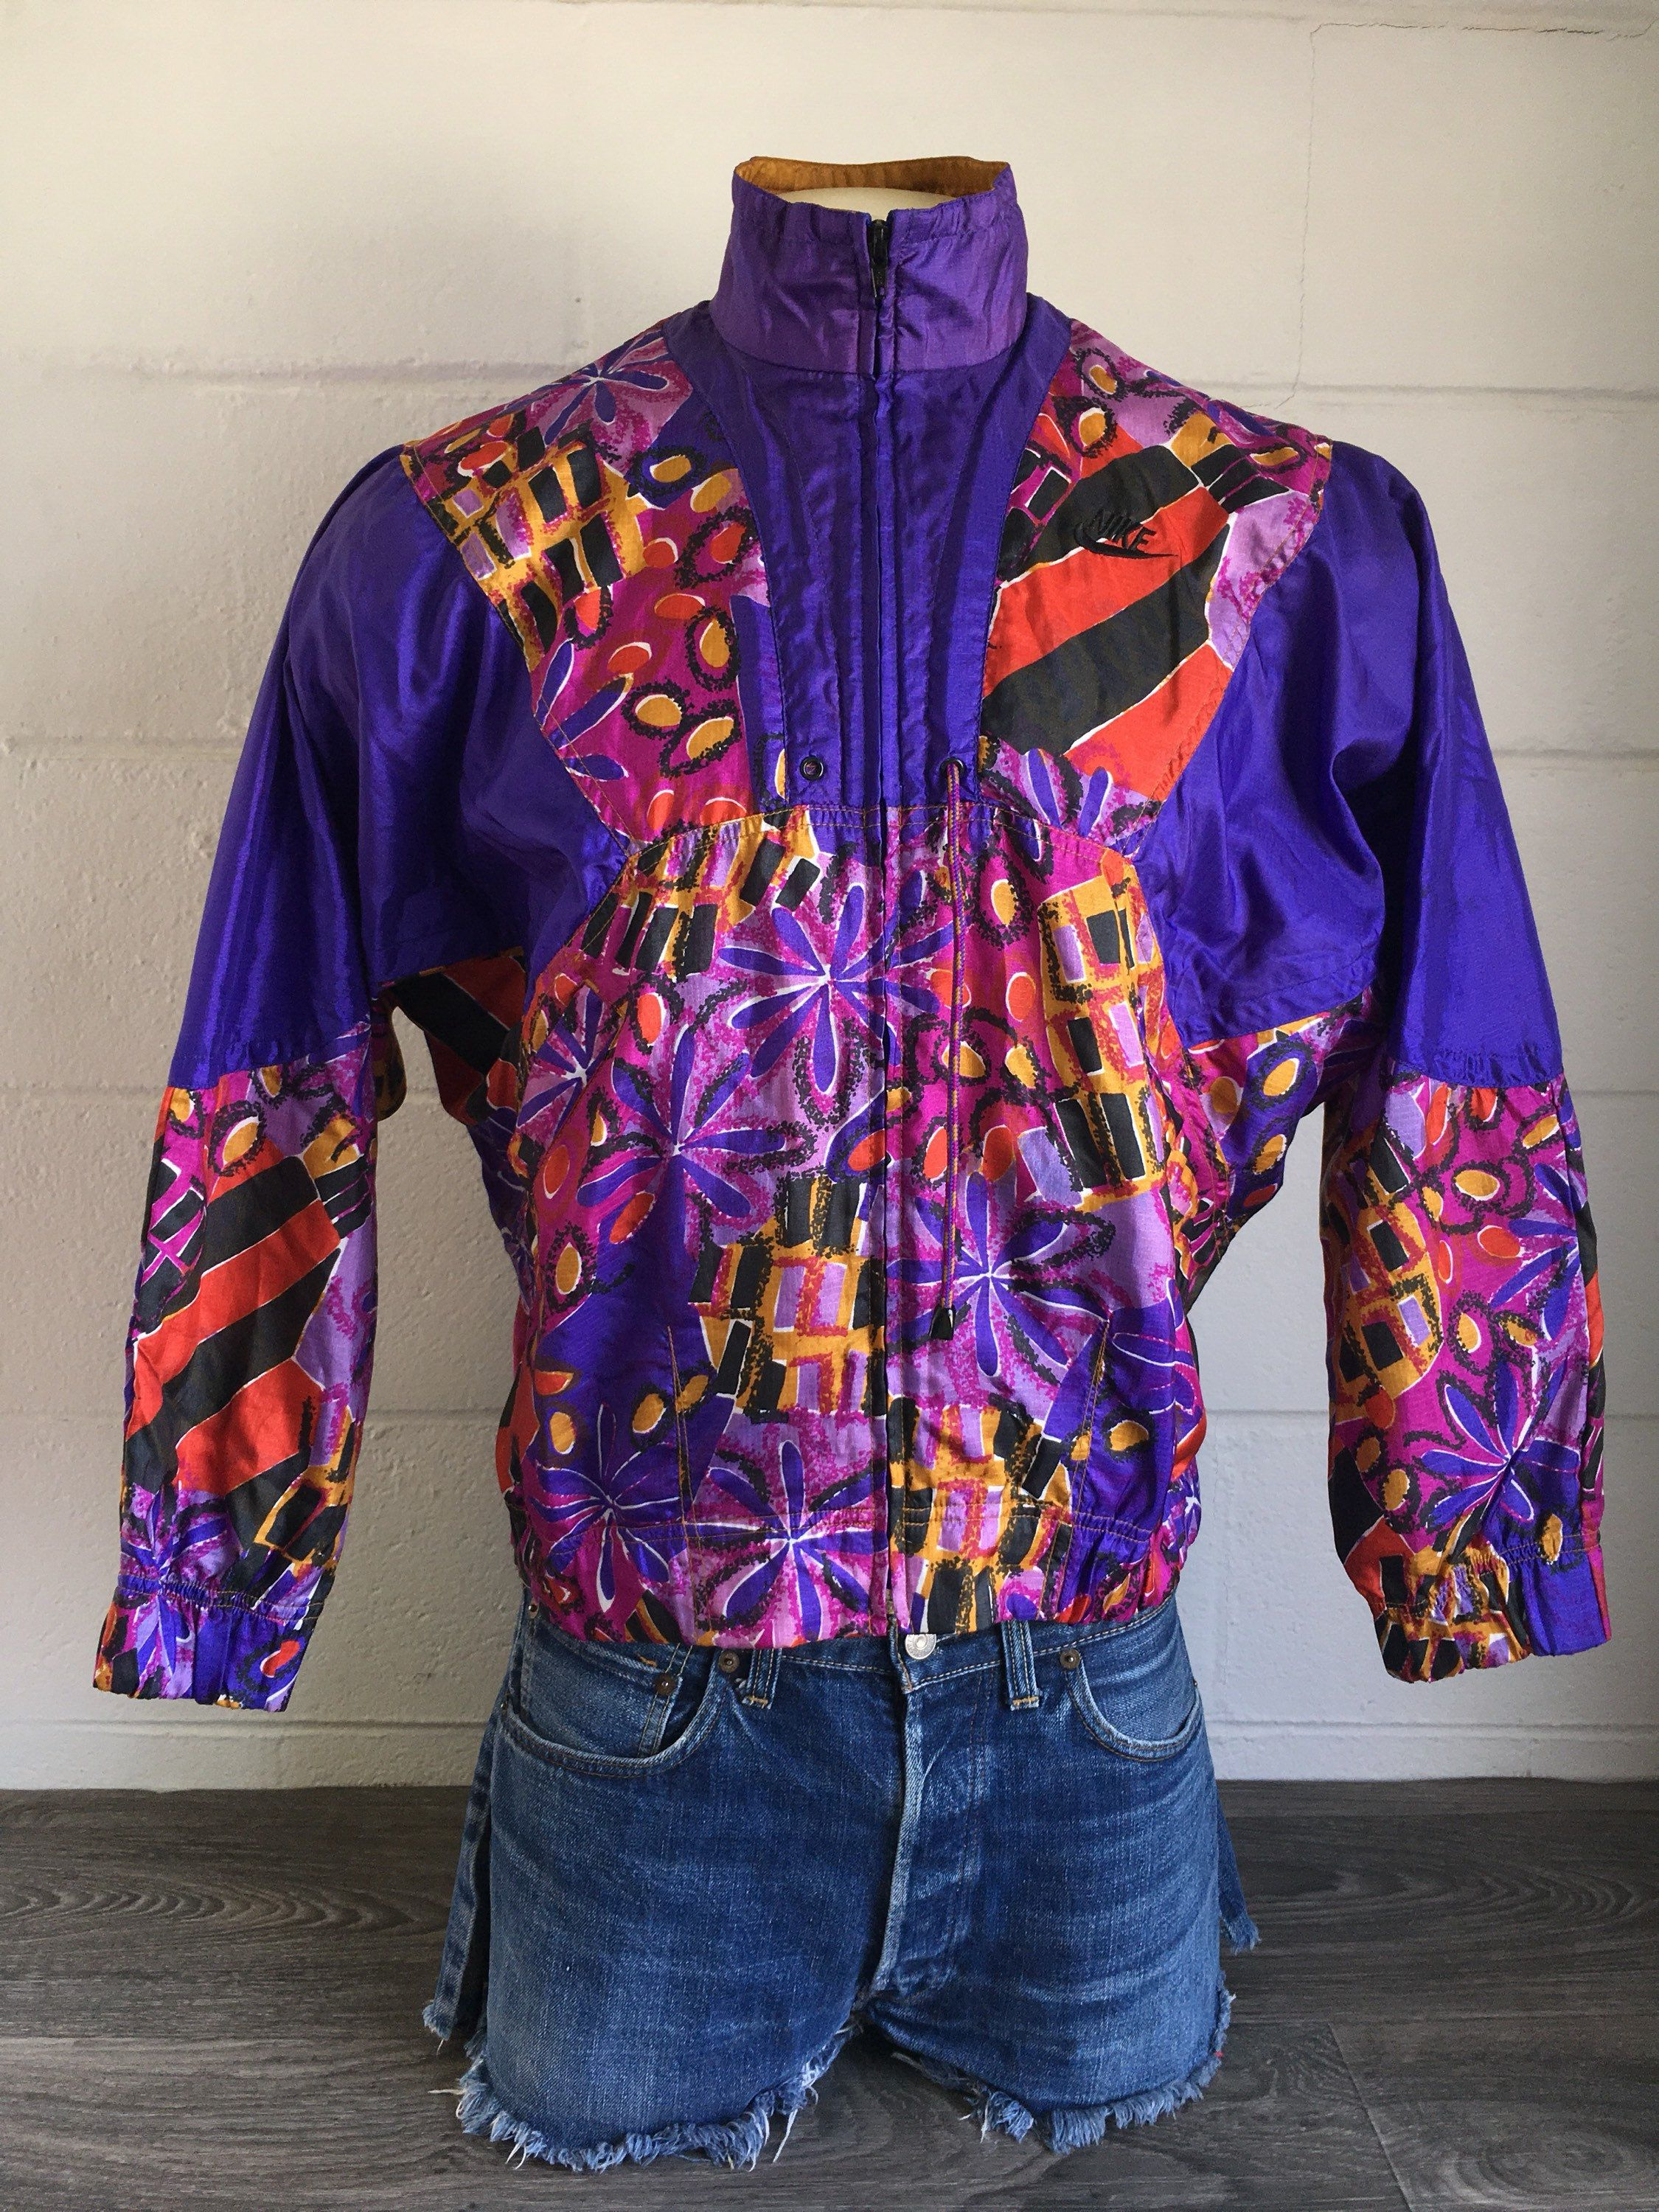 82e2f72d9d84 NIKE ELITE Windbreaker Jacket 90 s Vintage  Fresh Prince Hip Hop Full Zip  Track Batwing Style Sleeves  Multi Color Abstract AMAZING!